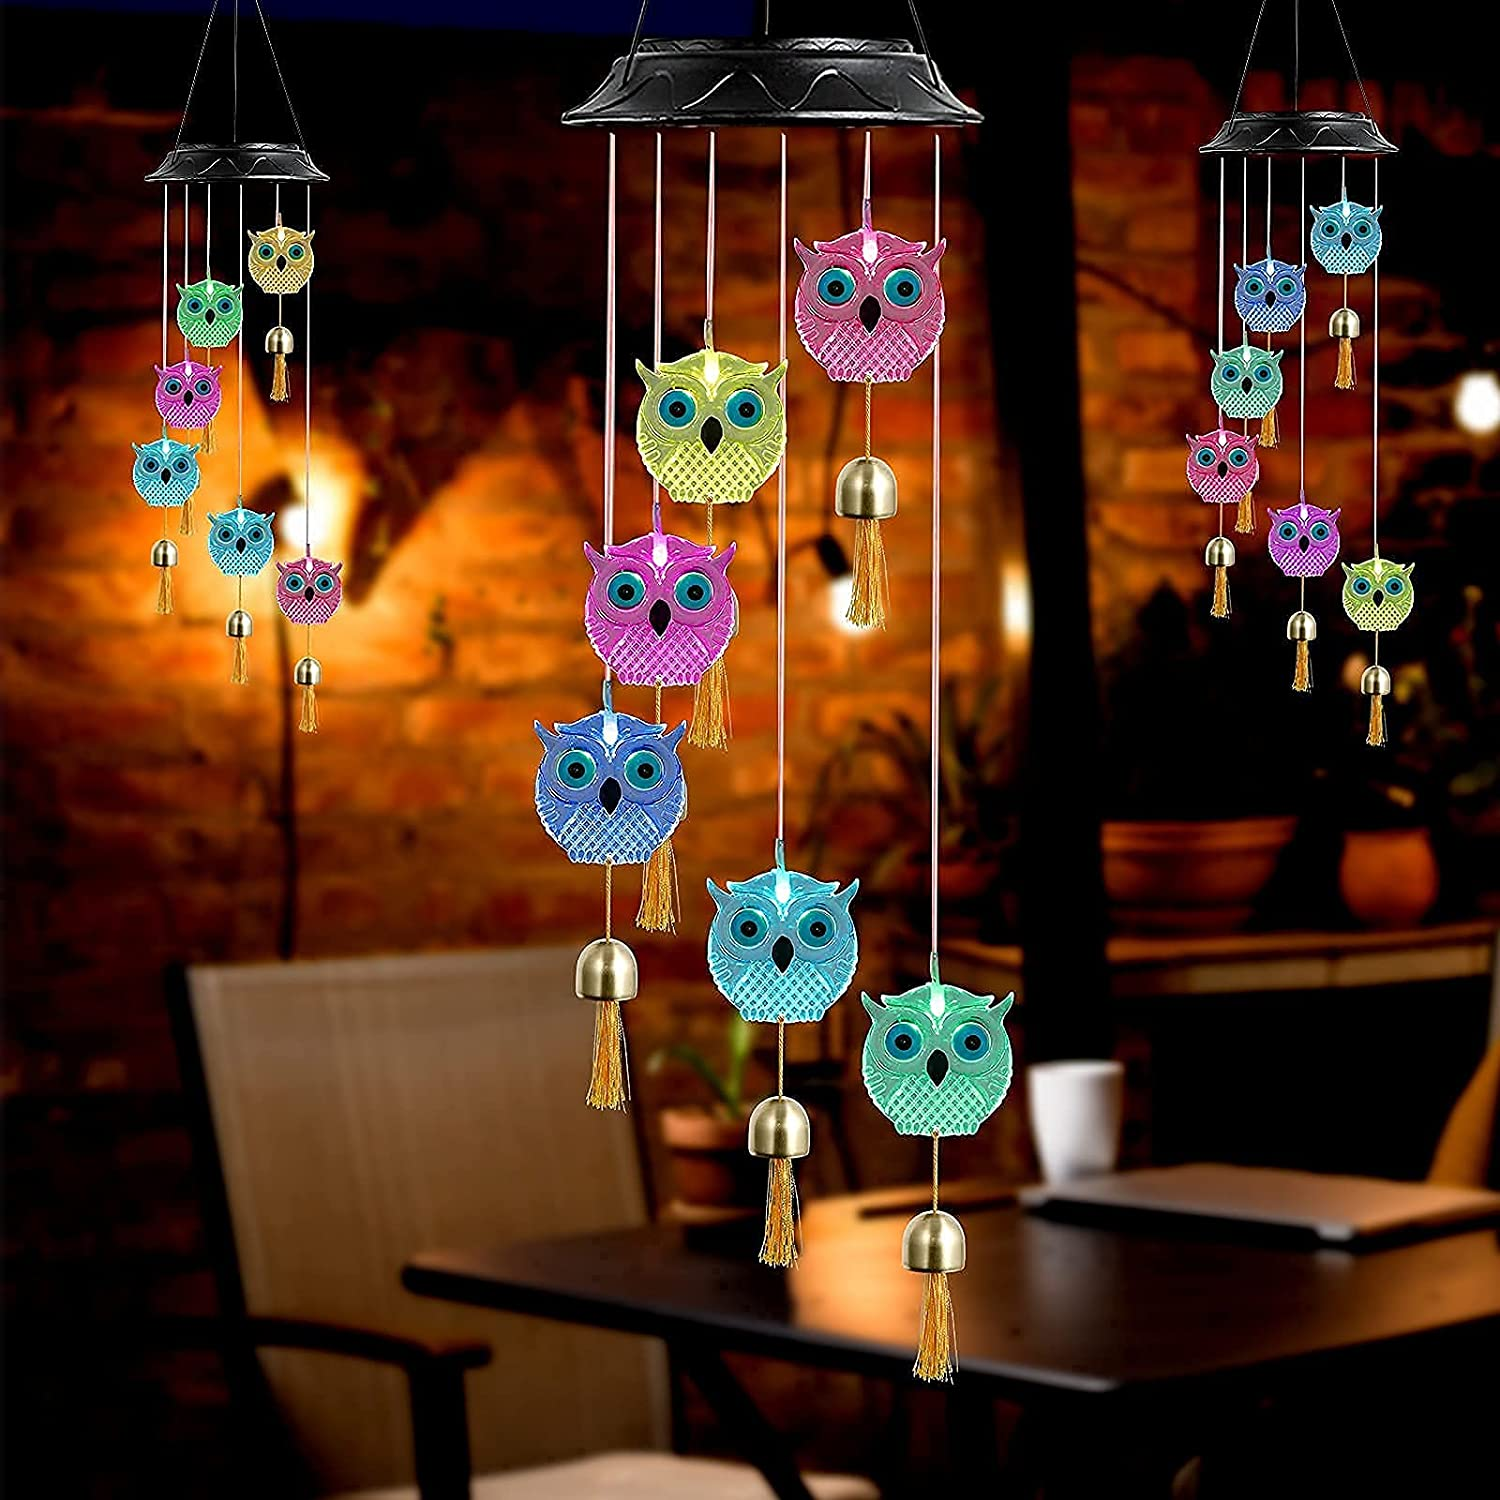 ALBAS ELFIN Creative Paintable DIY Owl Wind Chime, Waterproof Led Color Changing Solar Wind Chimes, Gift for Mother, Grandma and Neighbor, Used for Patio Decor, Home Decoration